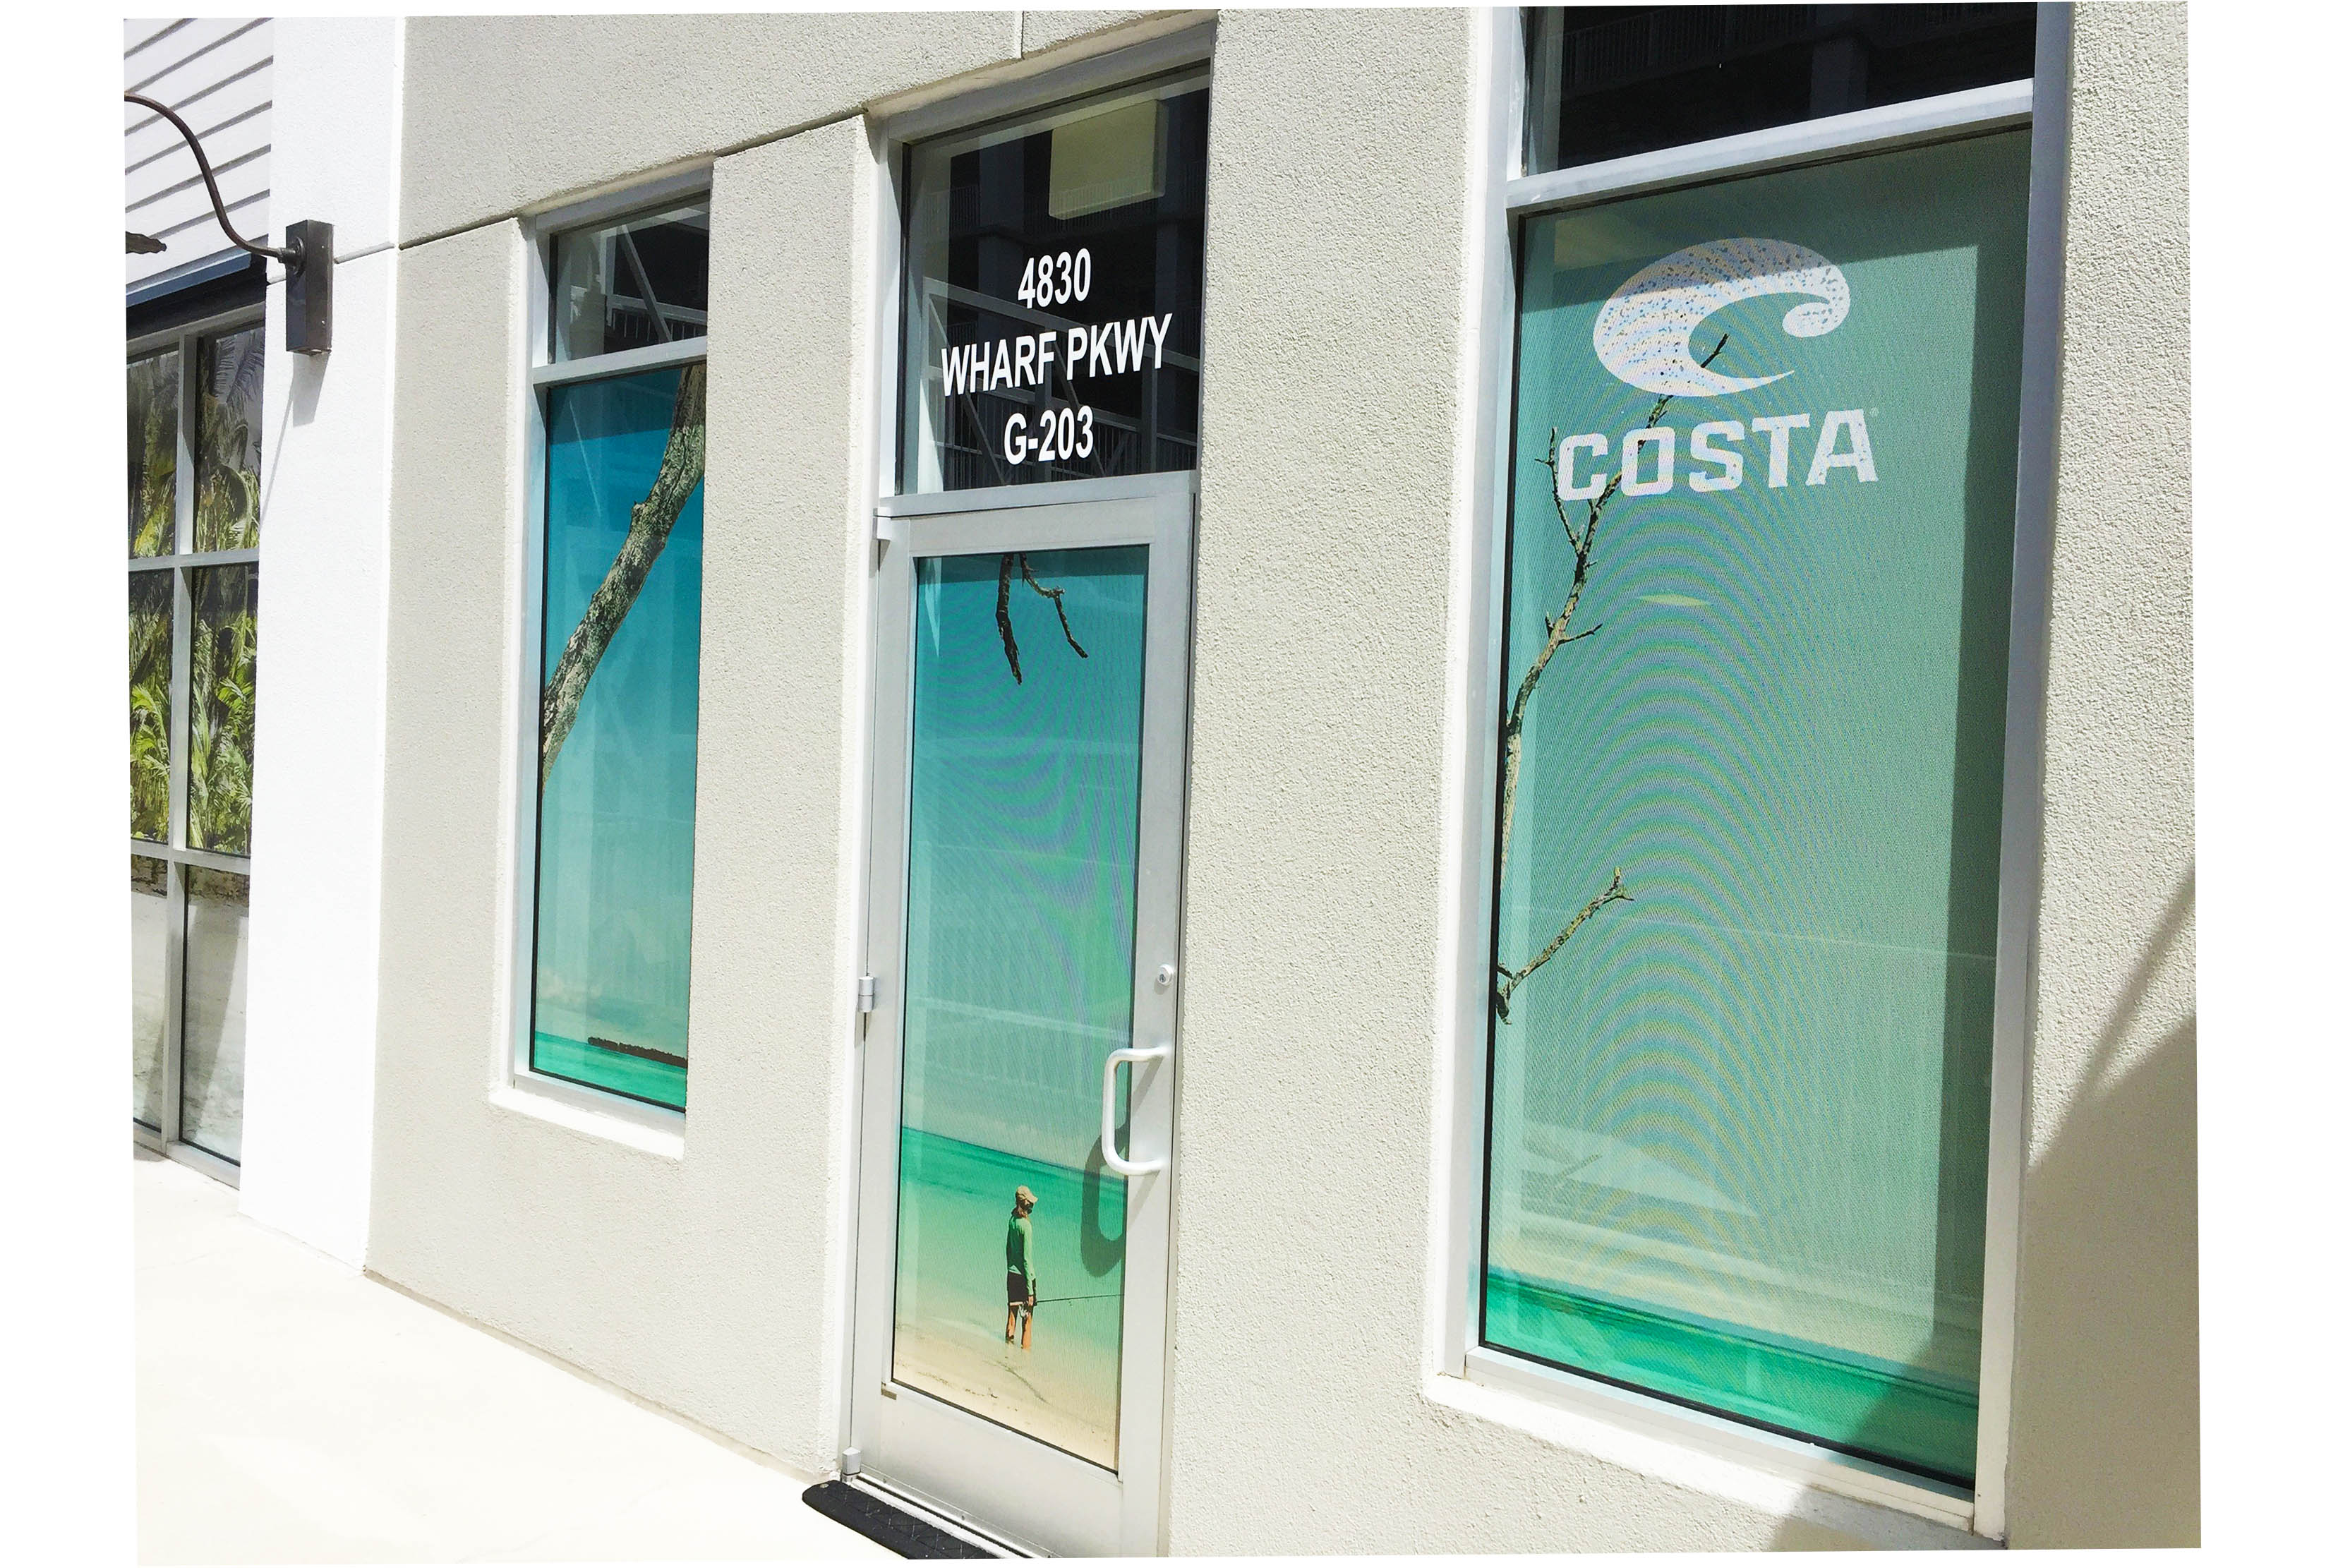 perforated window film_COSTA_commercial windows invisiguard